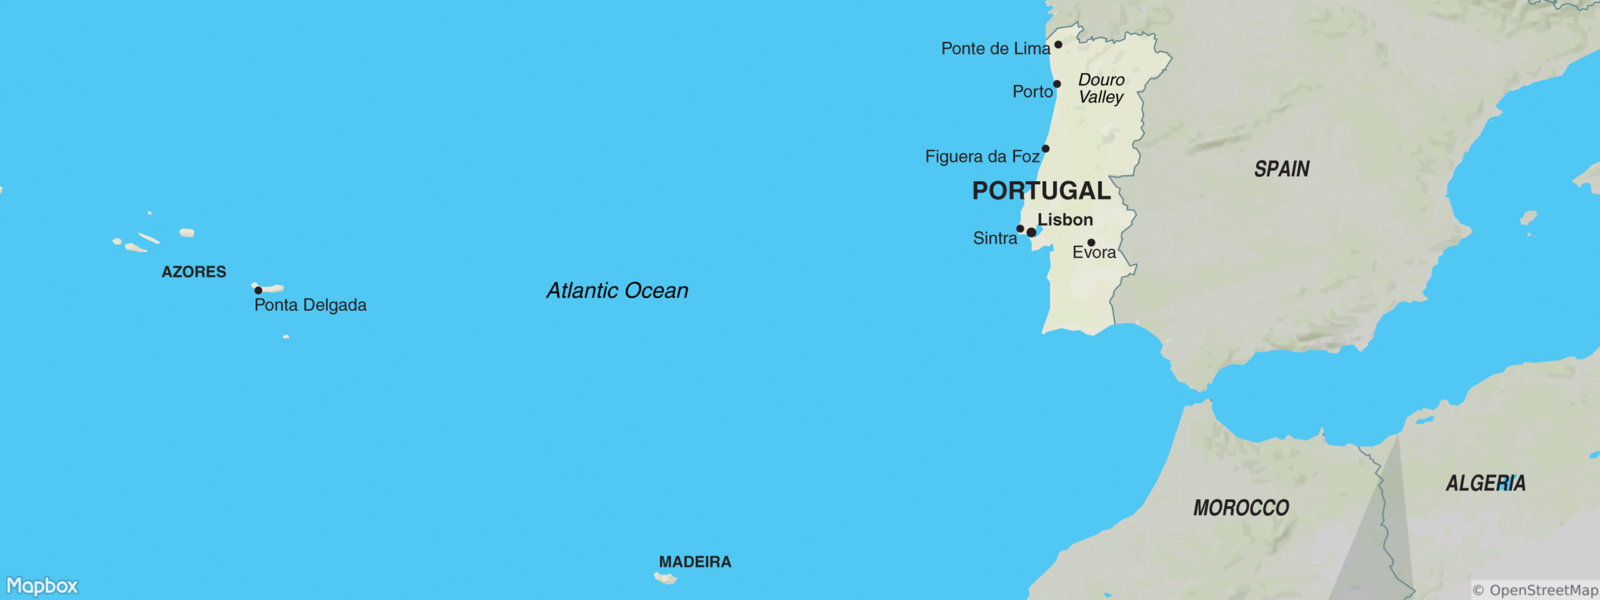 Portugal, with Azores and Madeira map